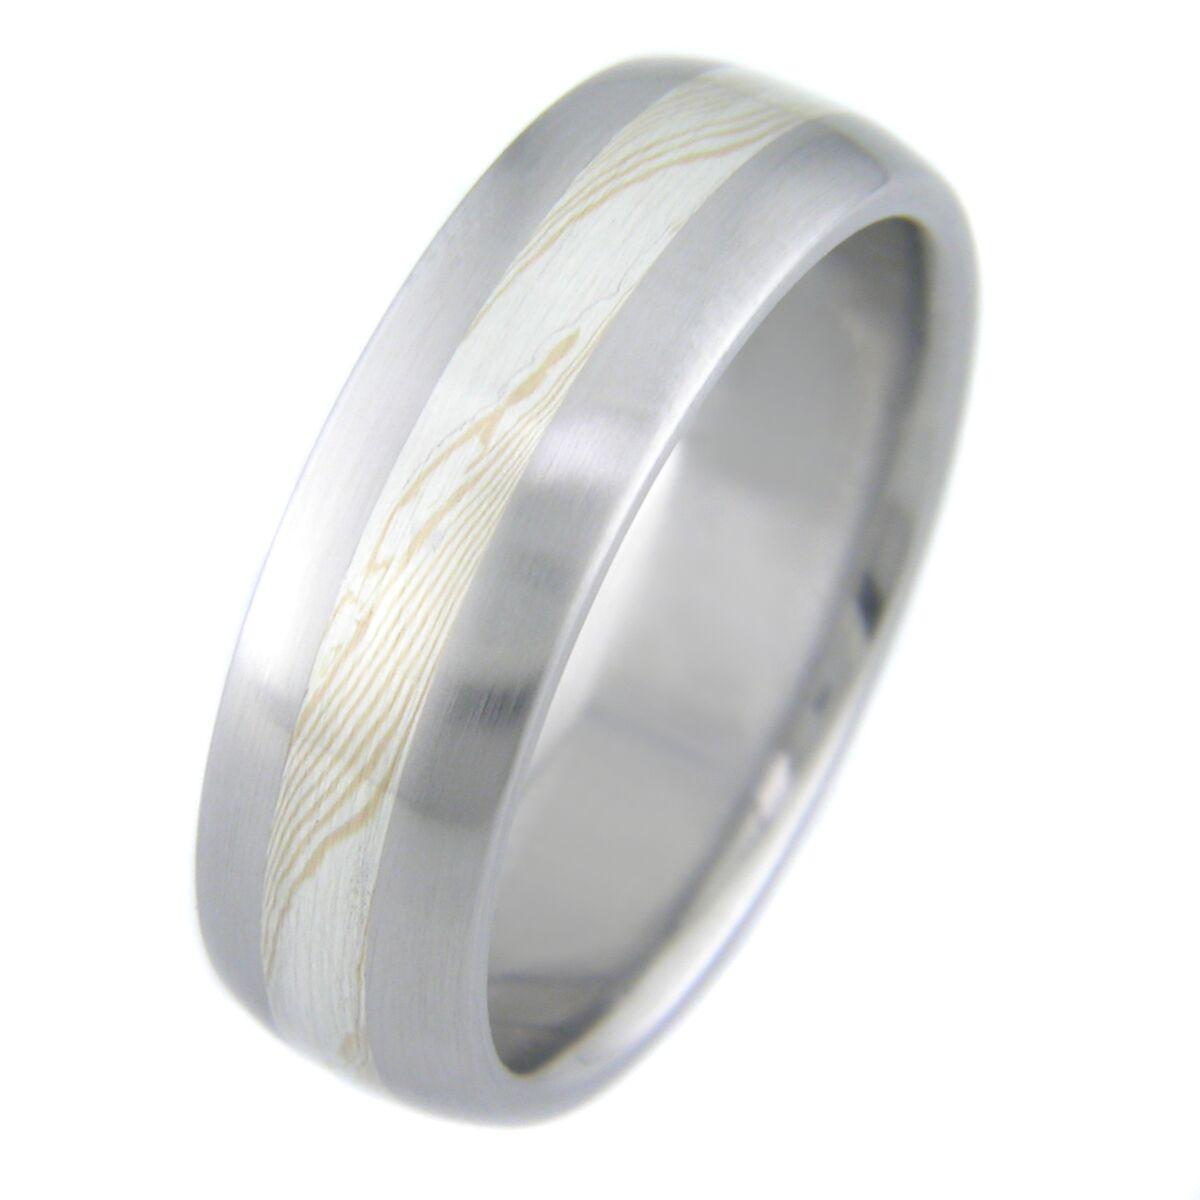 Gold and Silver Twist Mokume Gane Ring